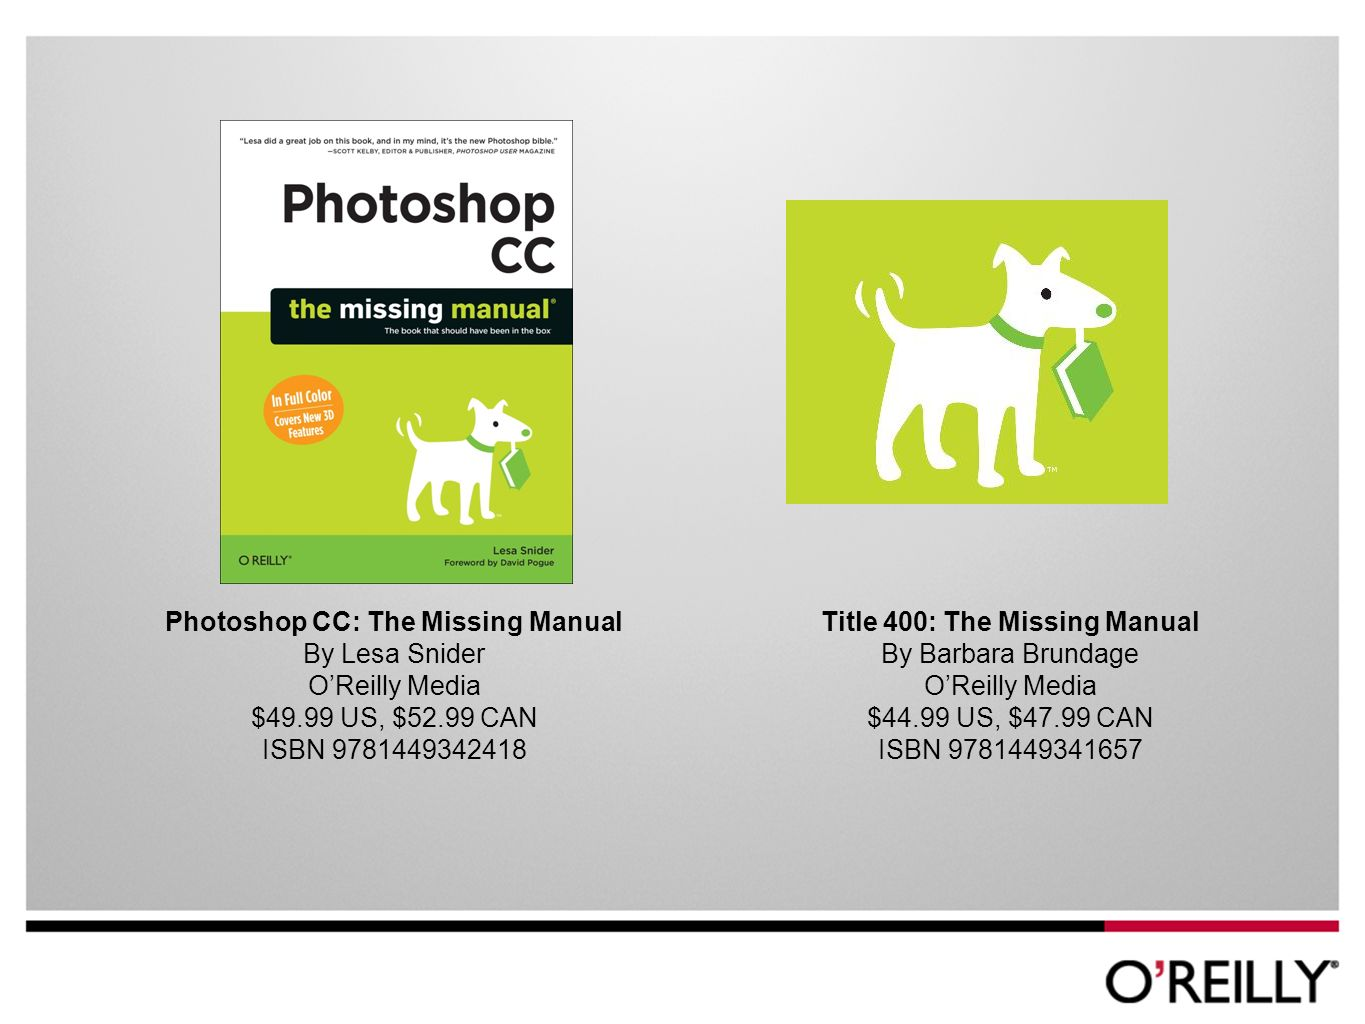 Photoshop CC: The Missing Manual By Lesa Snider OReilly Media $49.99 US, $52.99 CAN ISBN Title 400: The Missing Manual By Barbara Brundage OReilly Media $44.99 US, $47.99 CAN ISBN